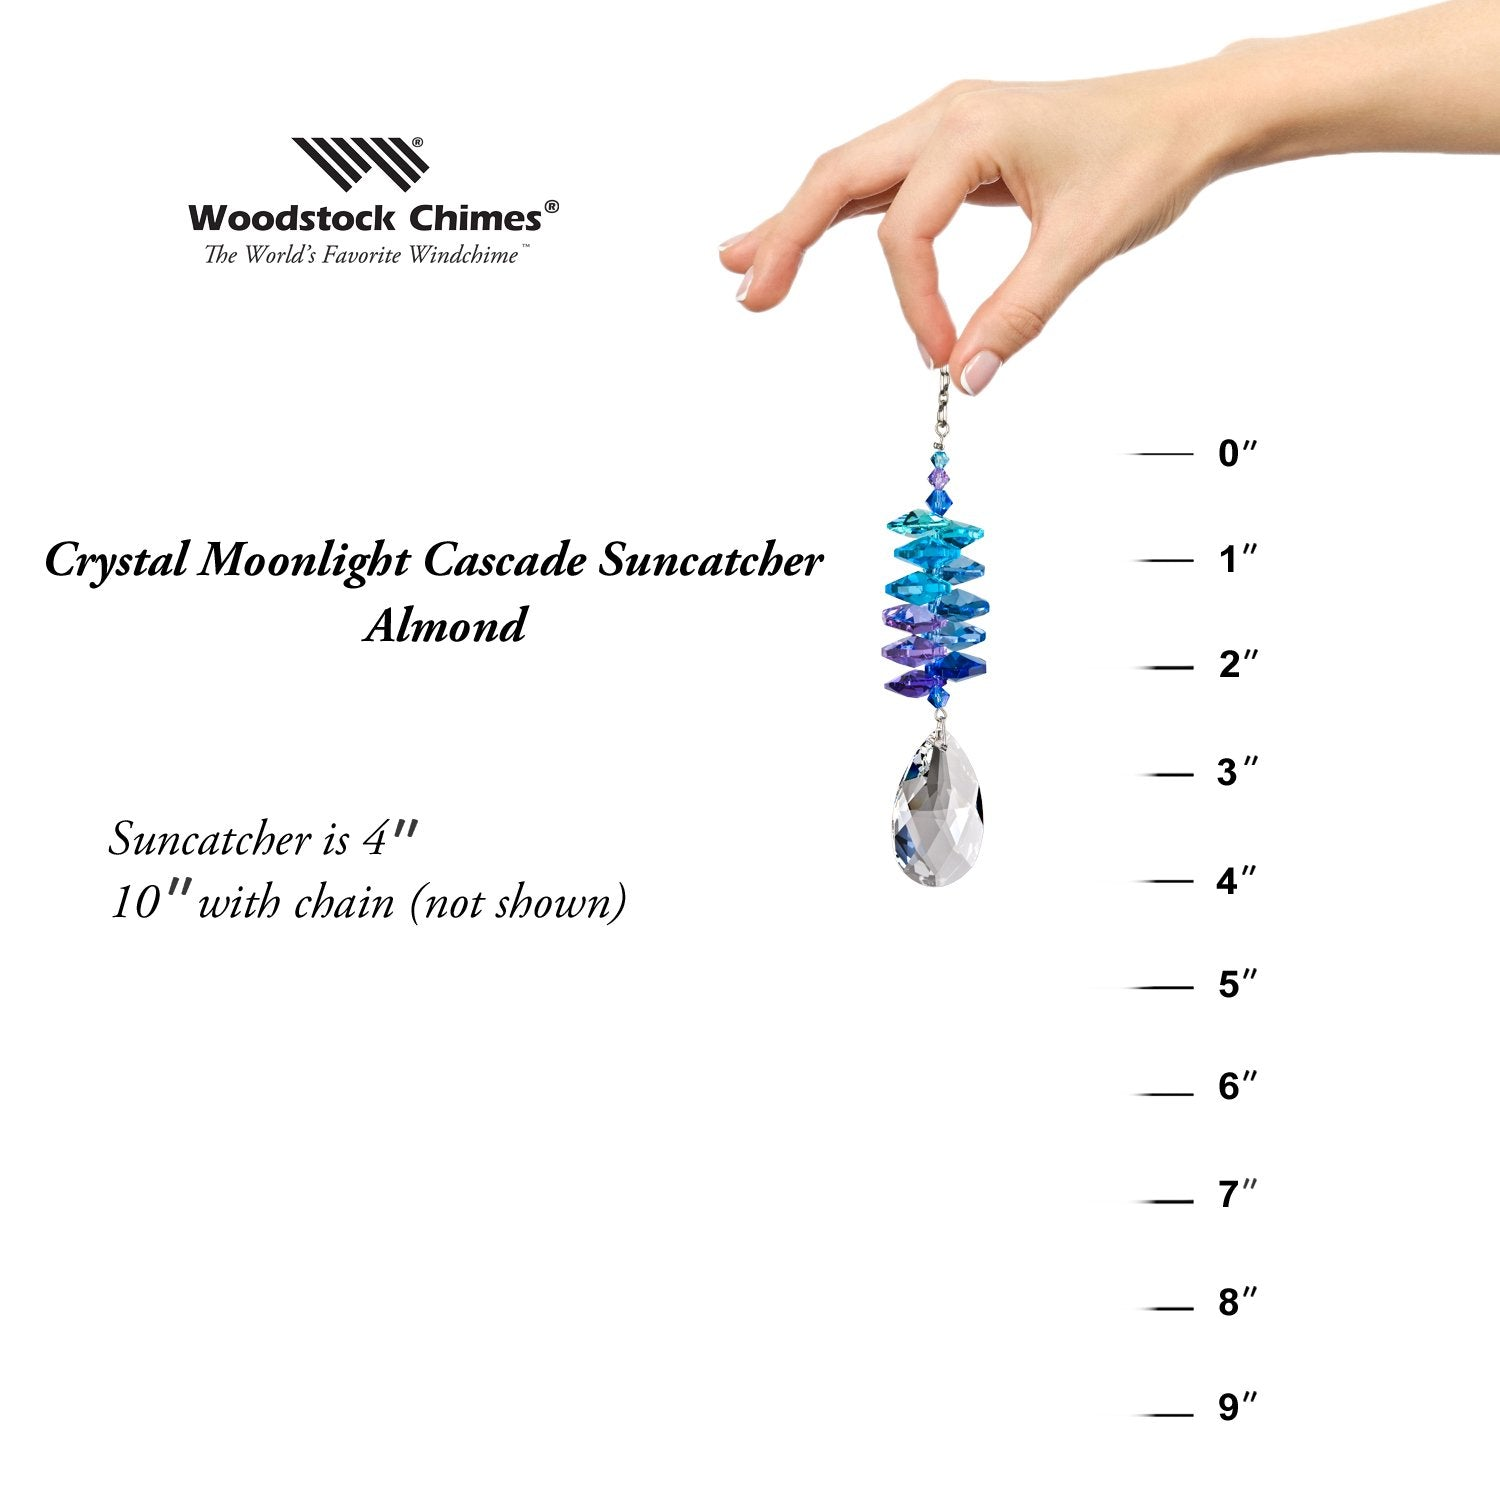 Crystal Moonlight Cascade Suncatcher - Almond proportion image